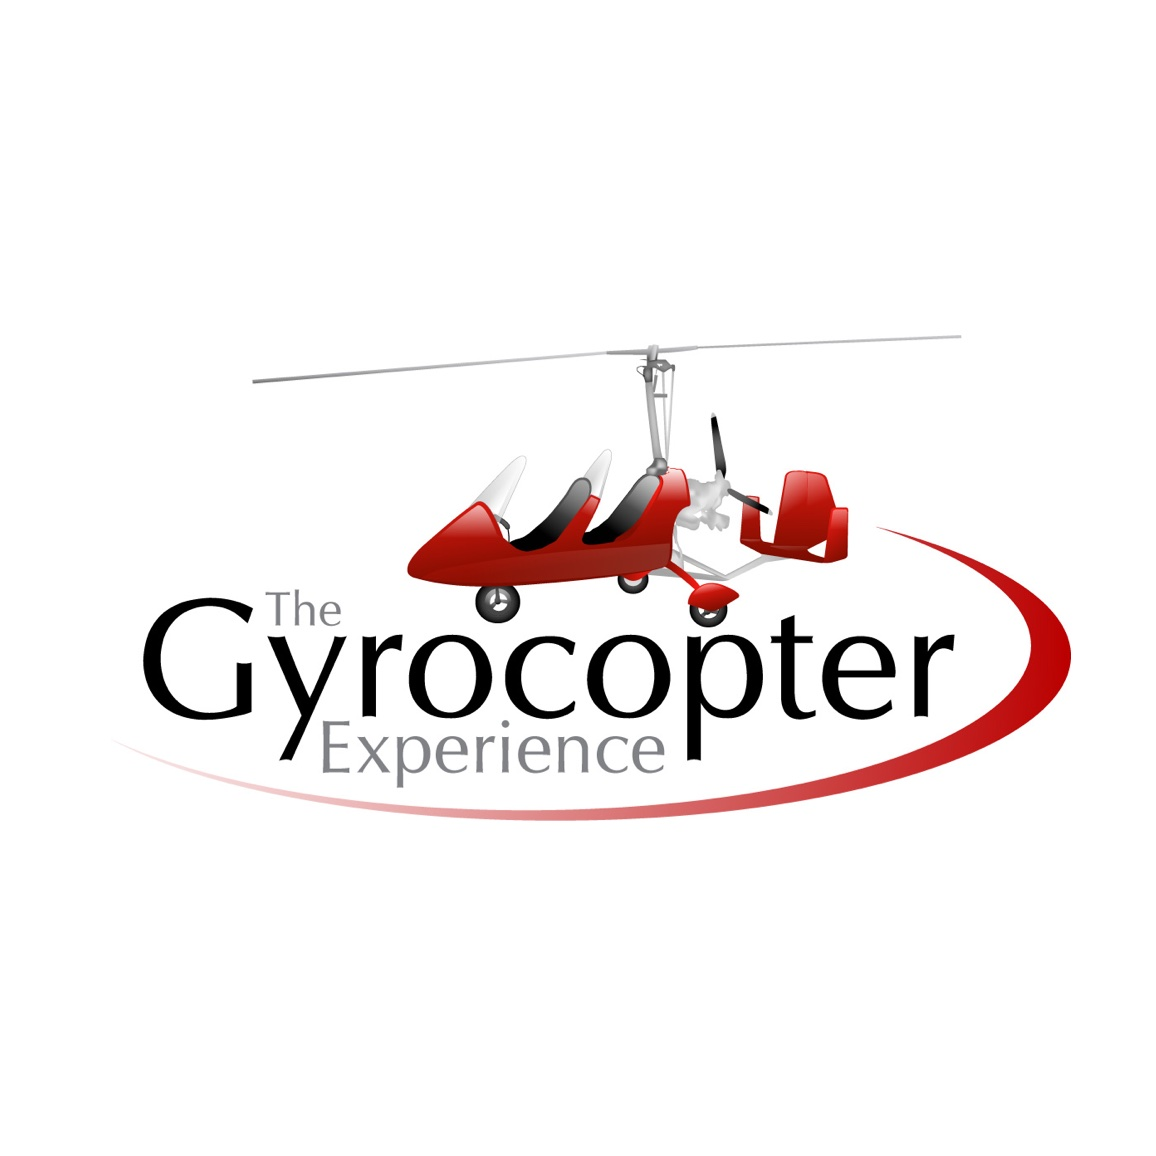 The Gyrocopter Experience - London East